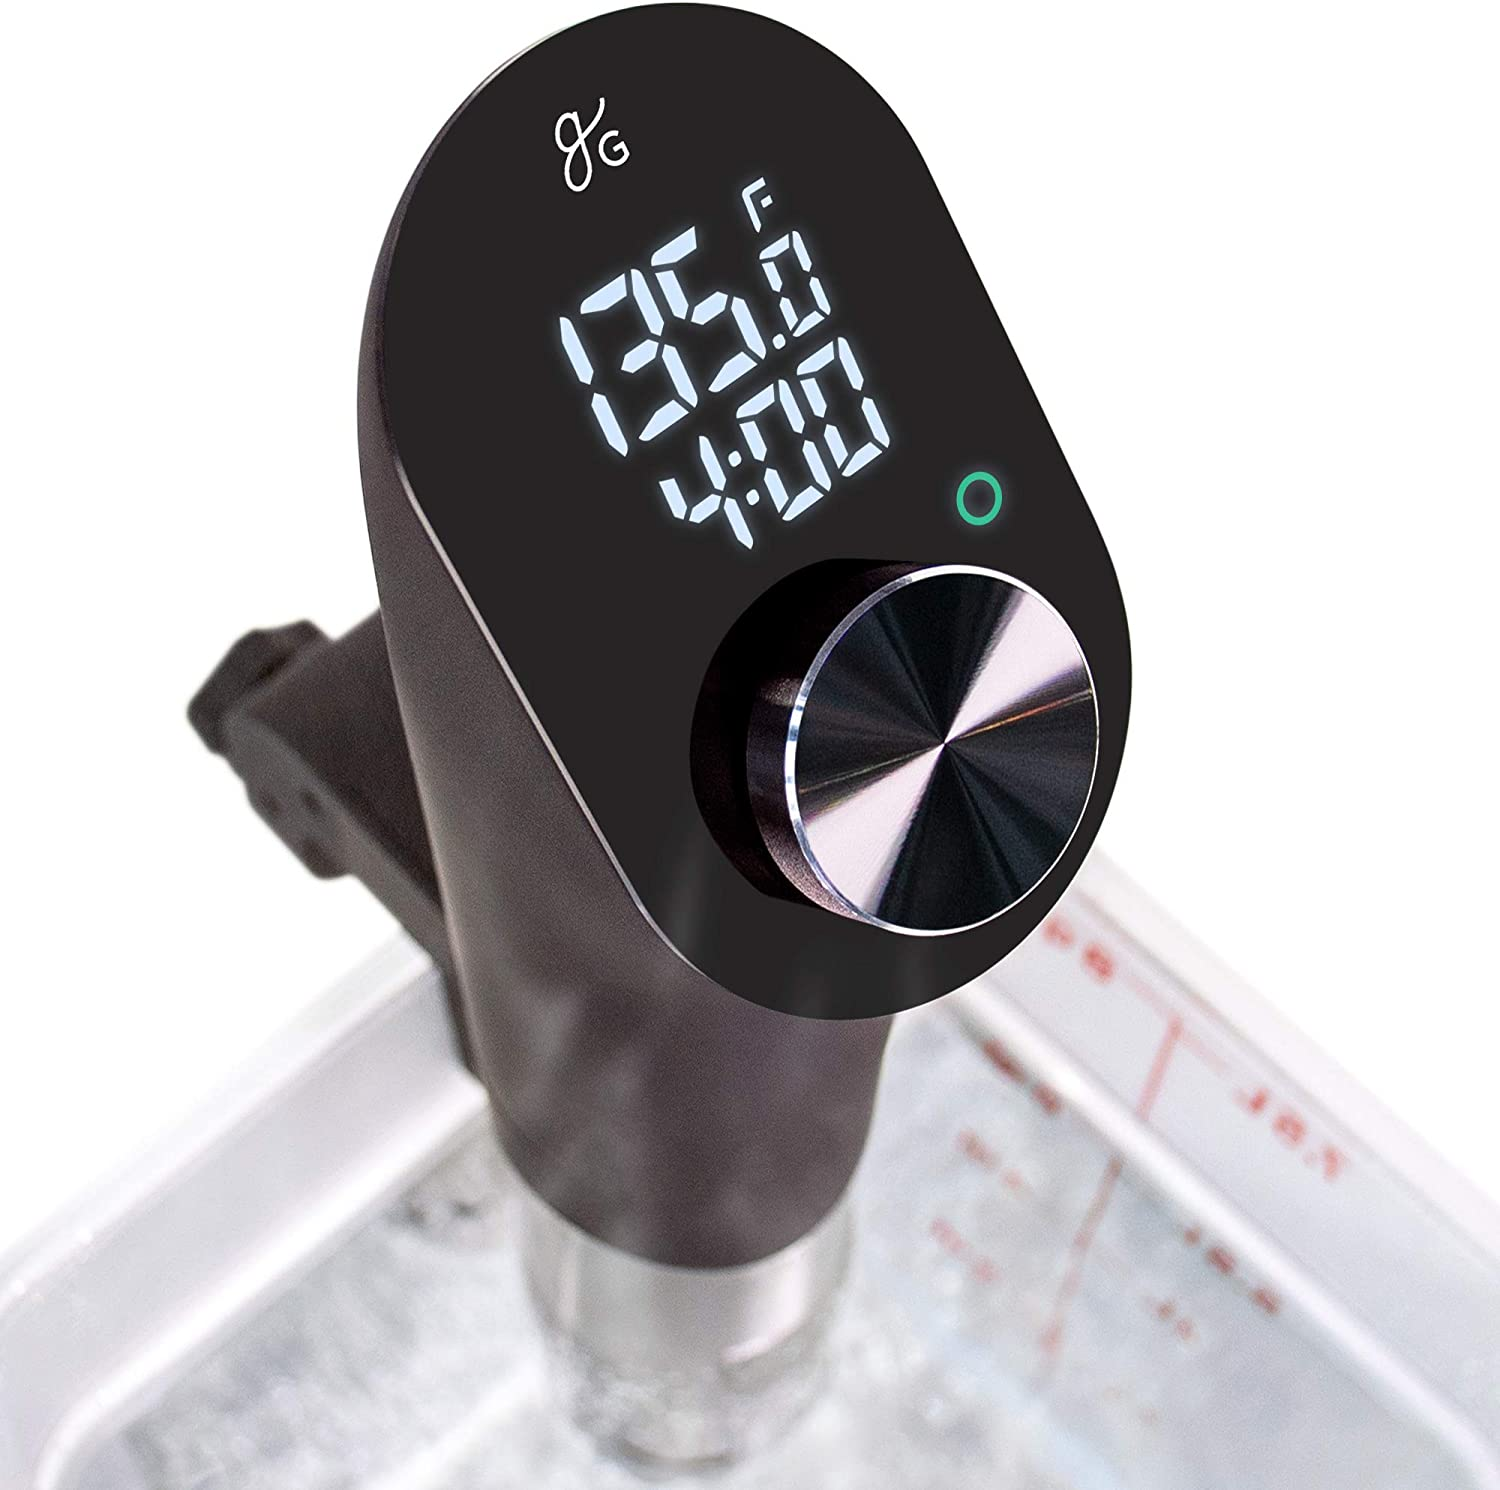 Greater Good sous vide